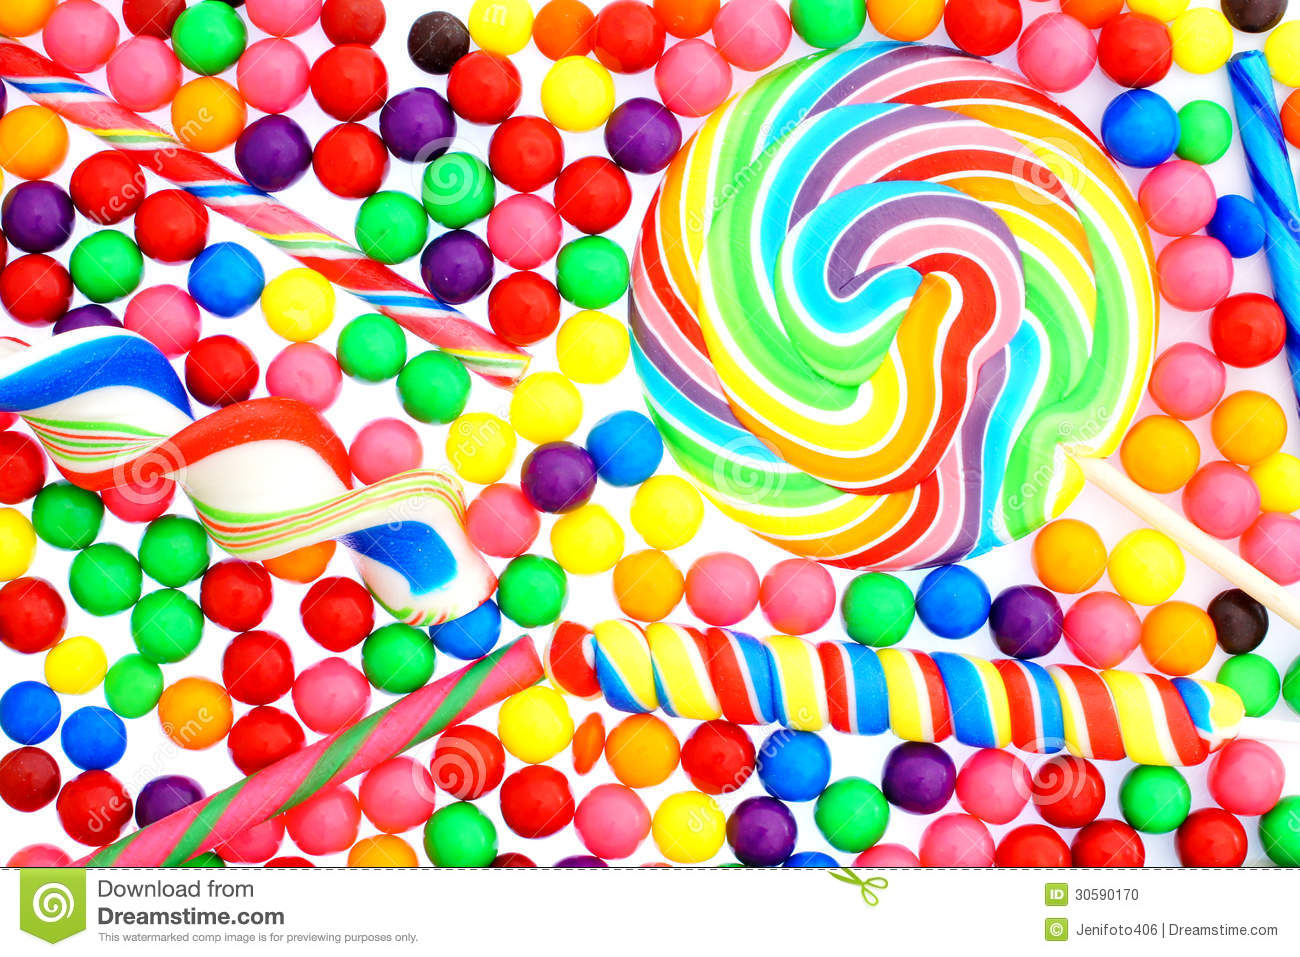 colorful candy wallpaper 8 - photo #12